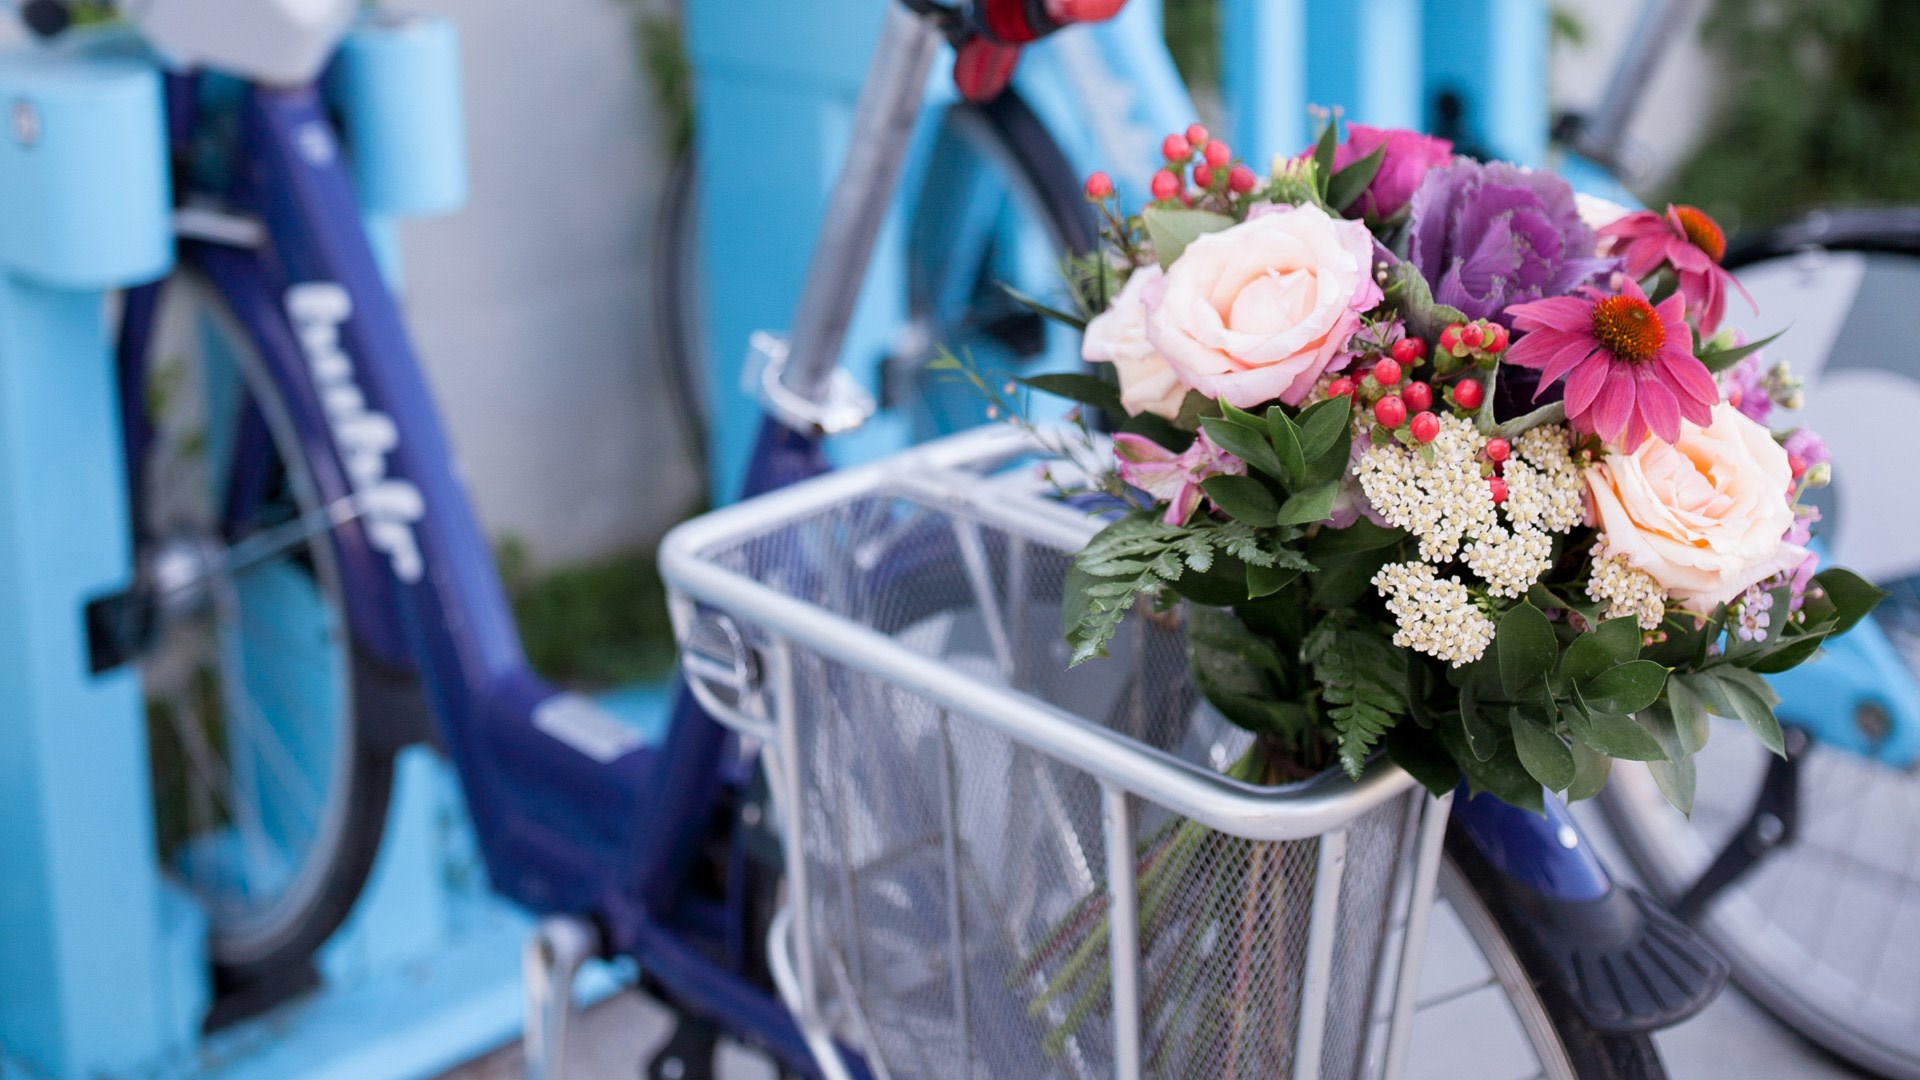 Arrangement & Bubler Bikes